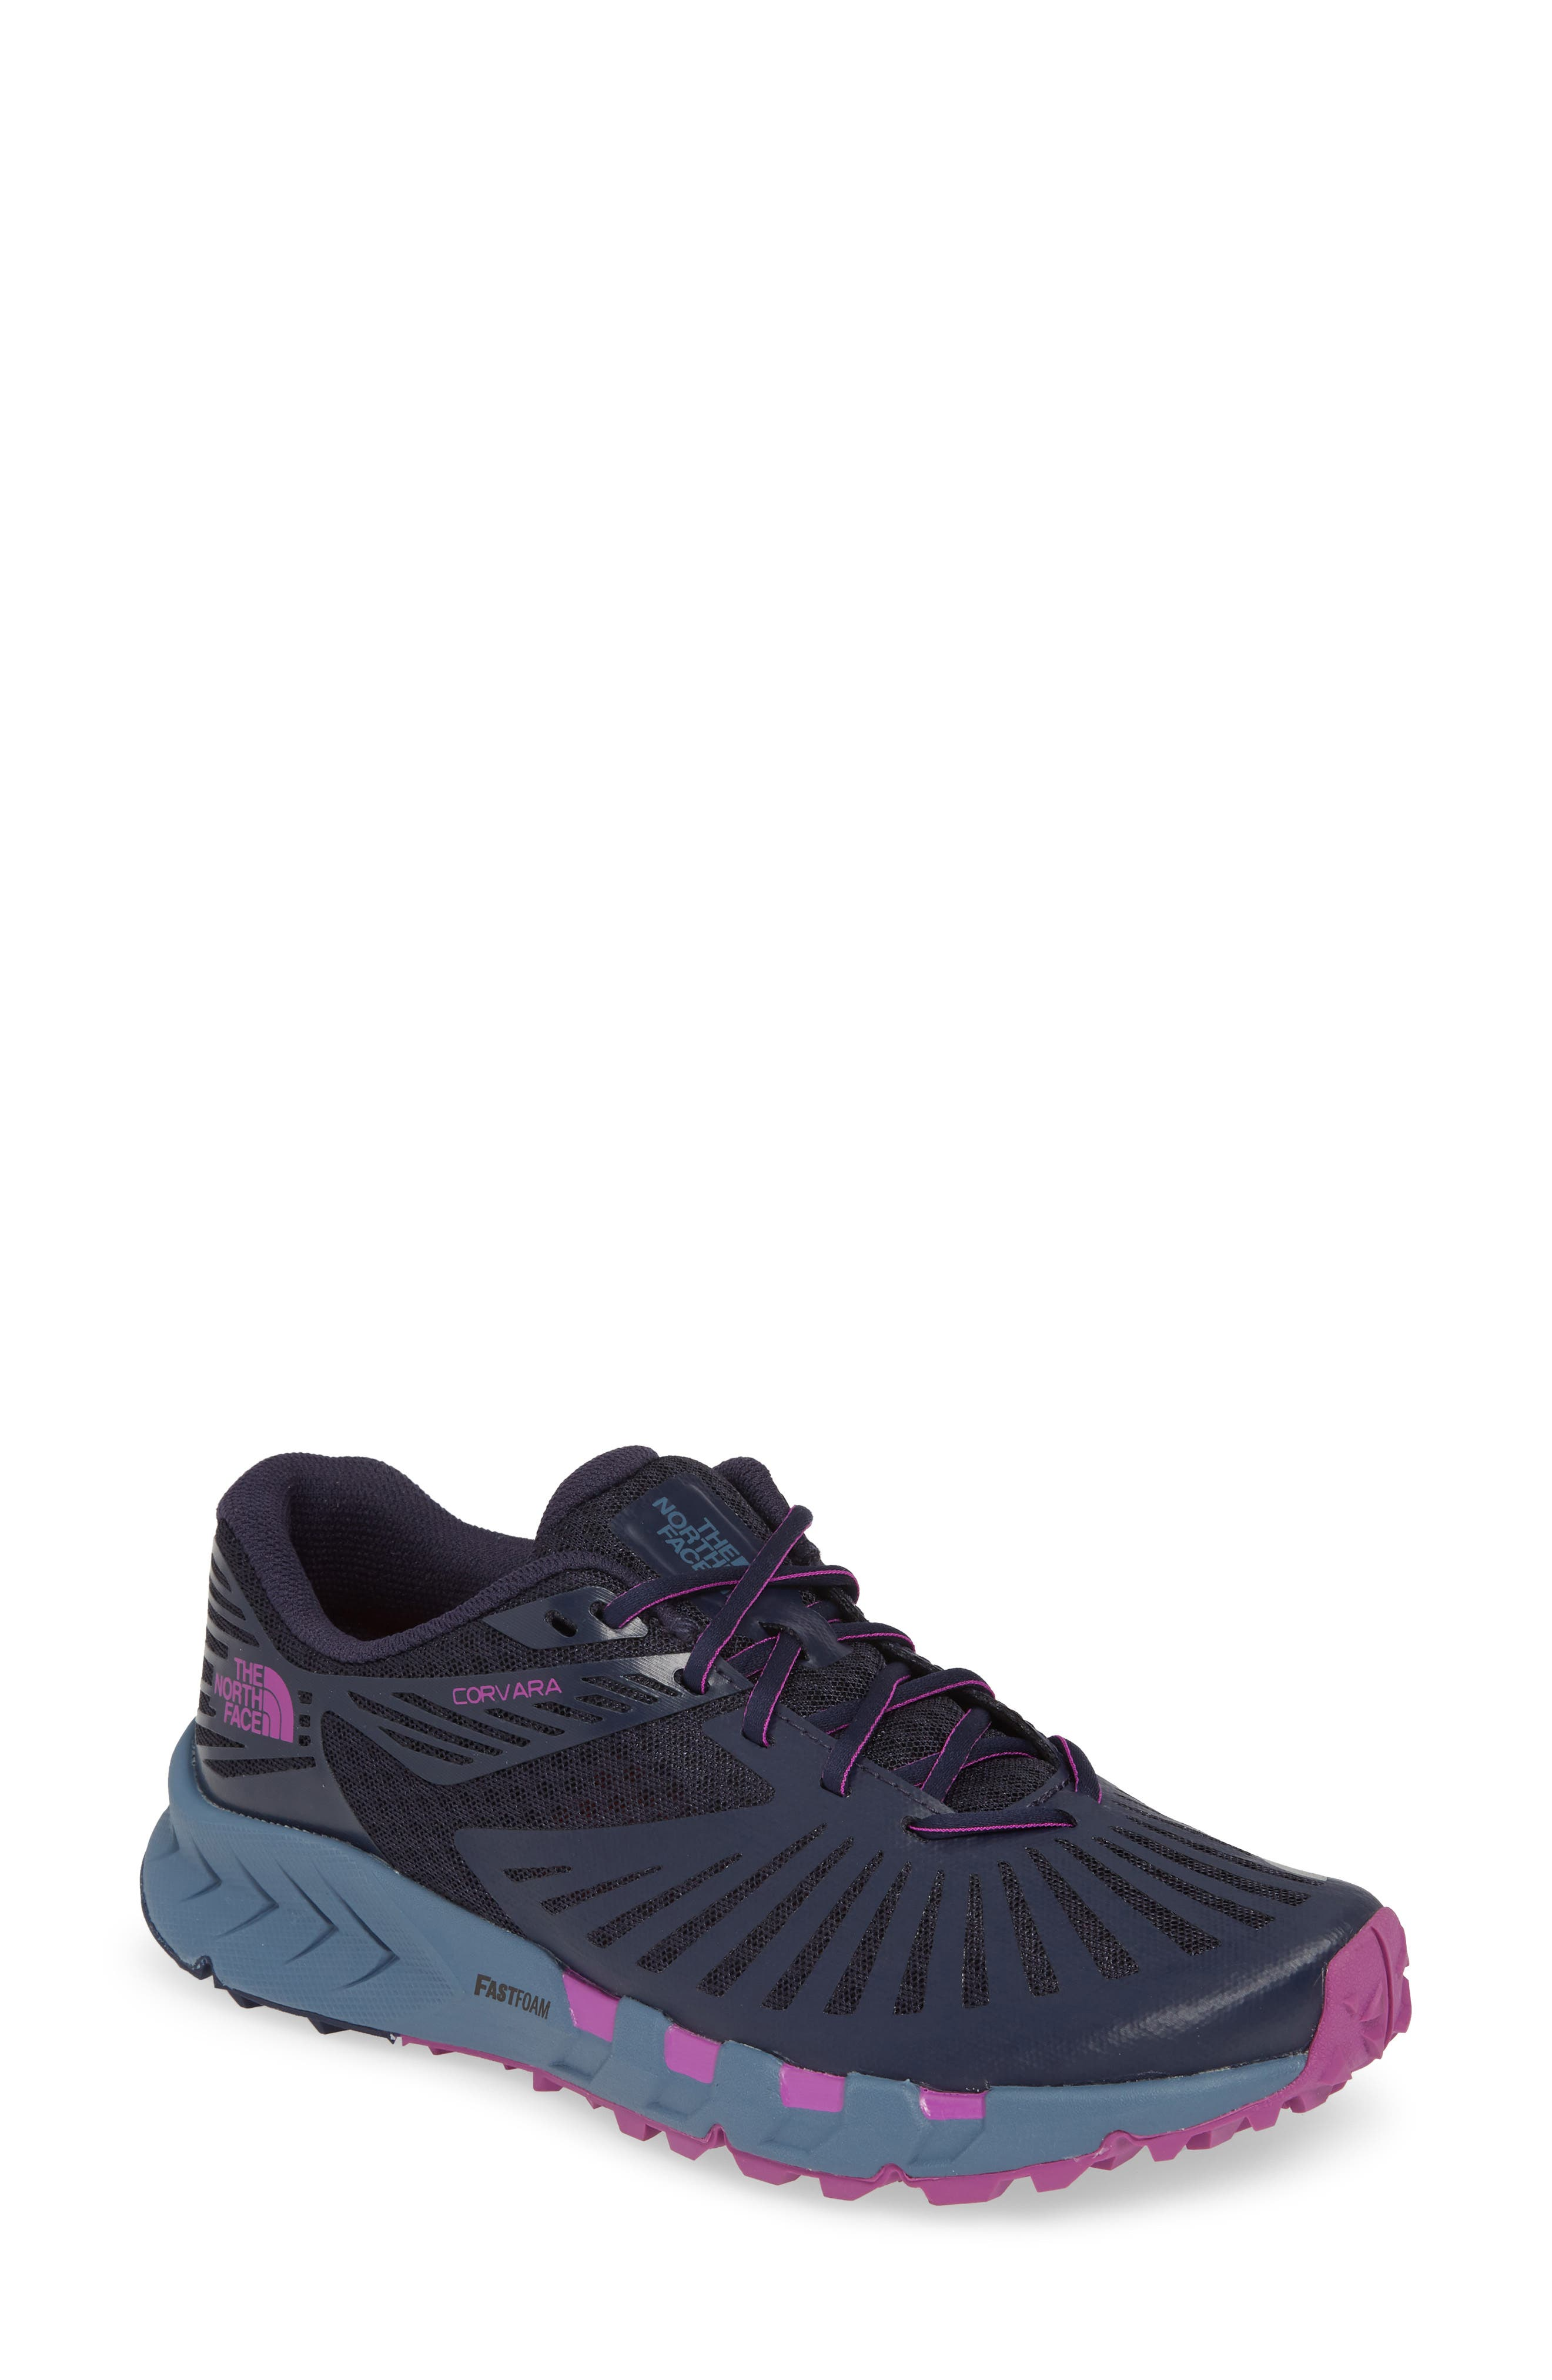 408cdc75f Women's The North Face Shoes   Nordstrom